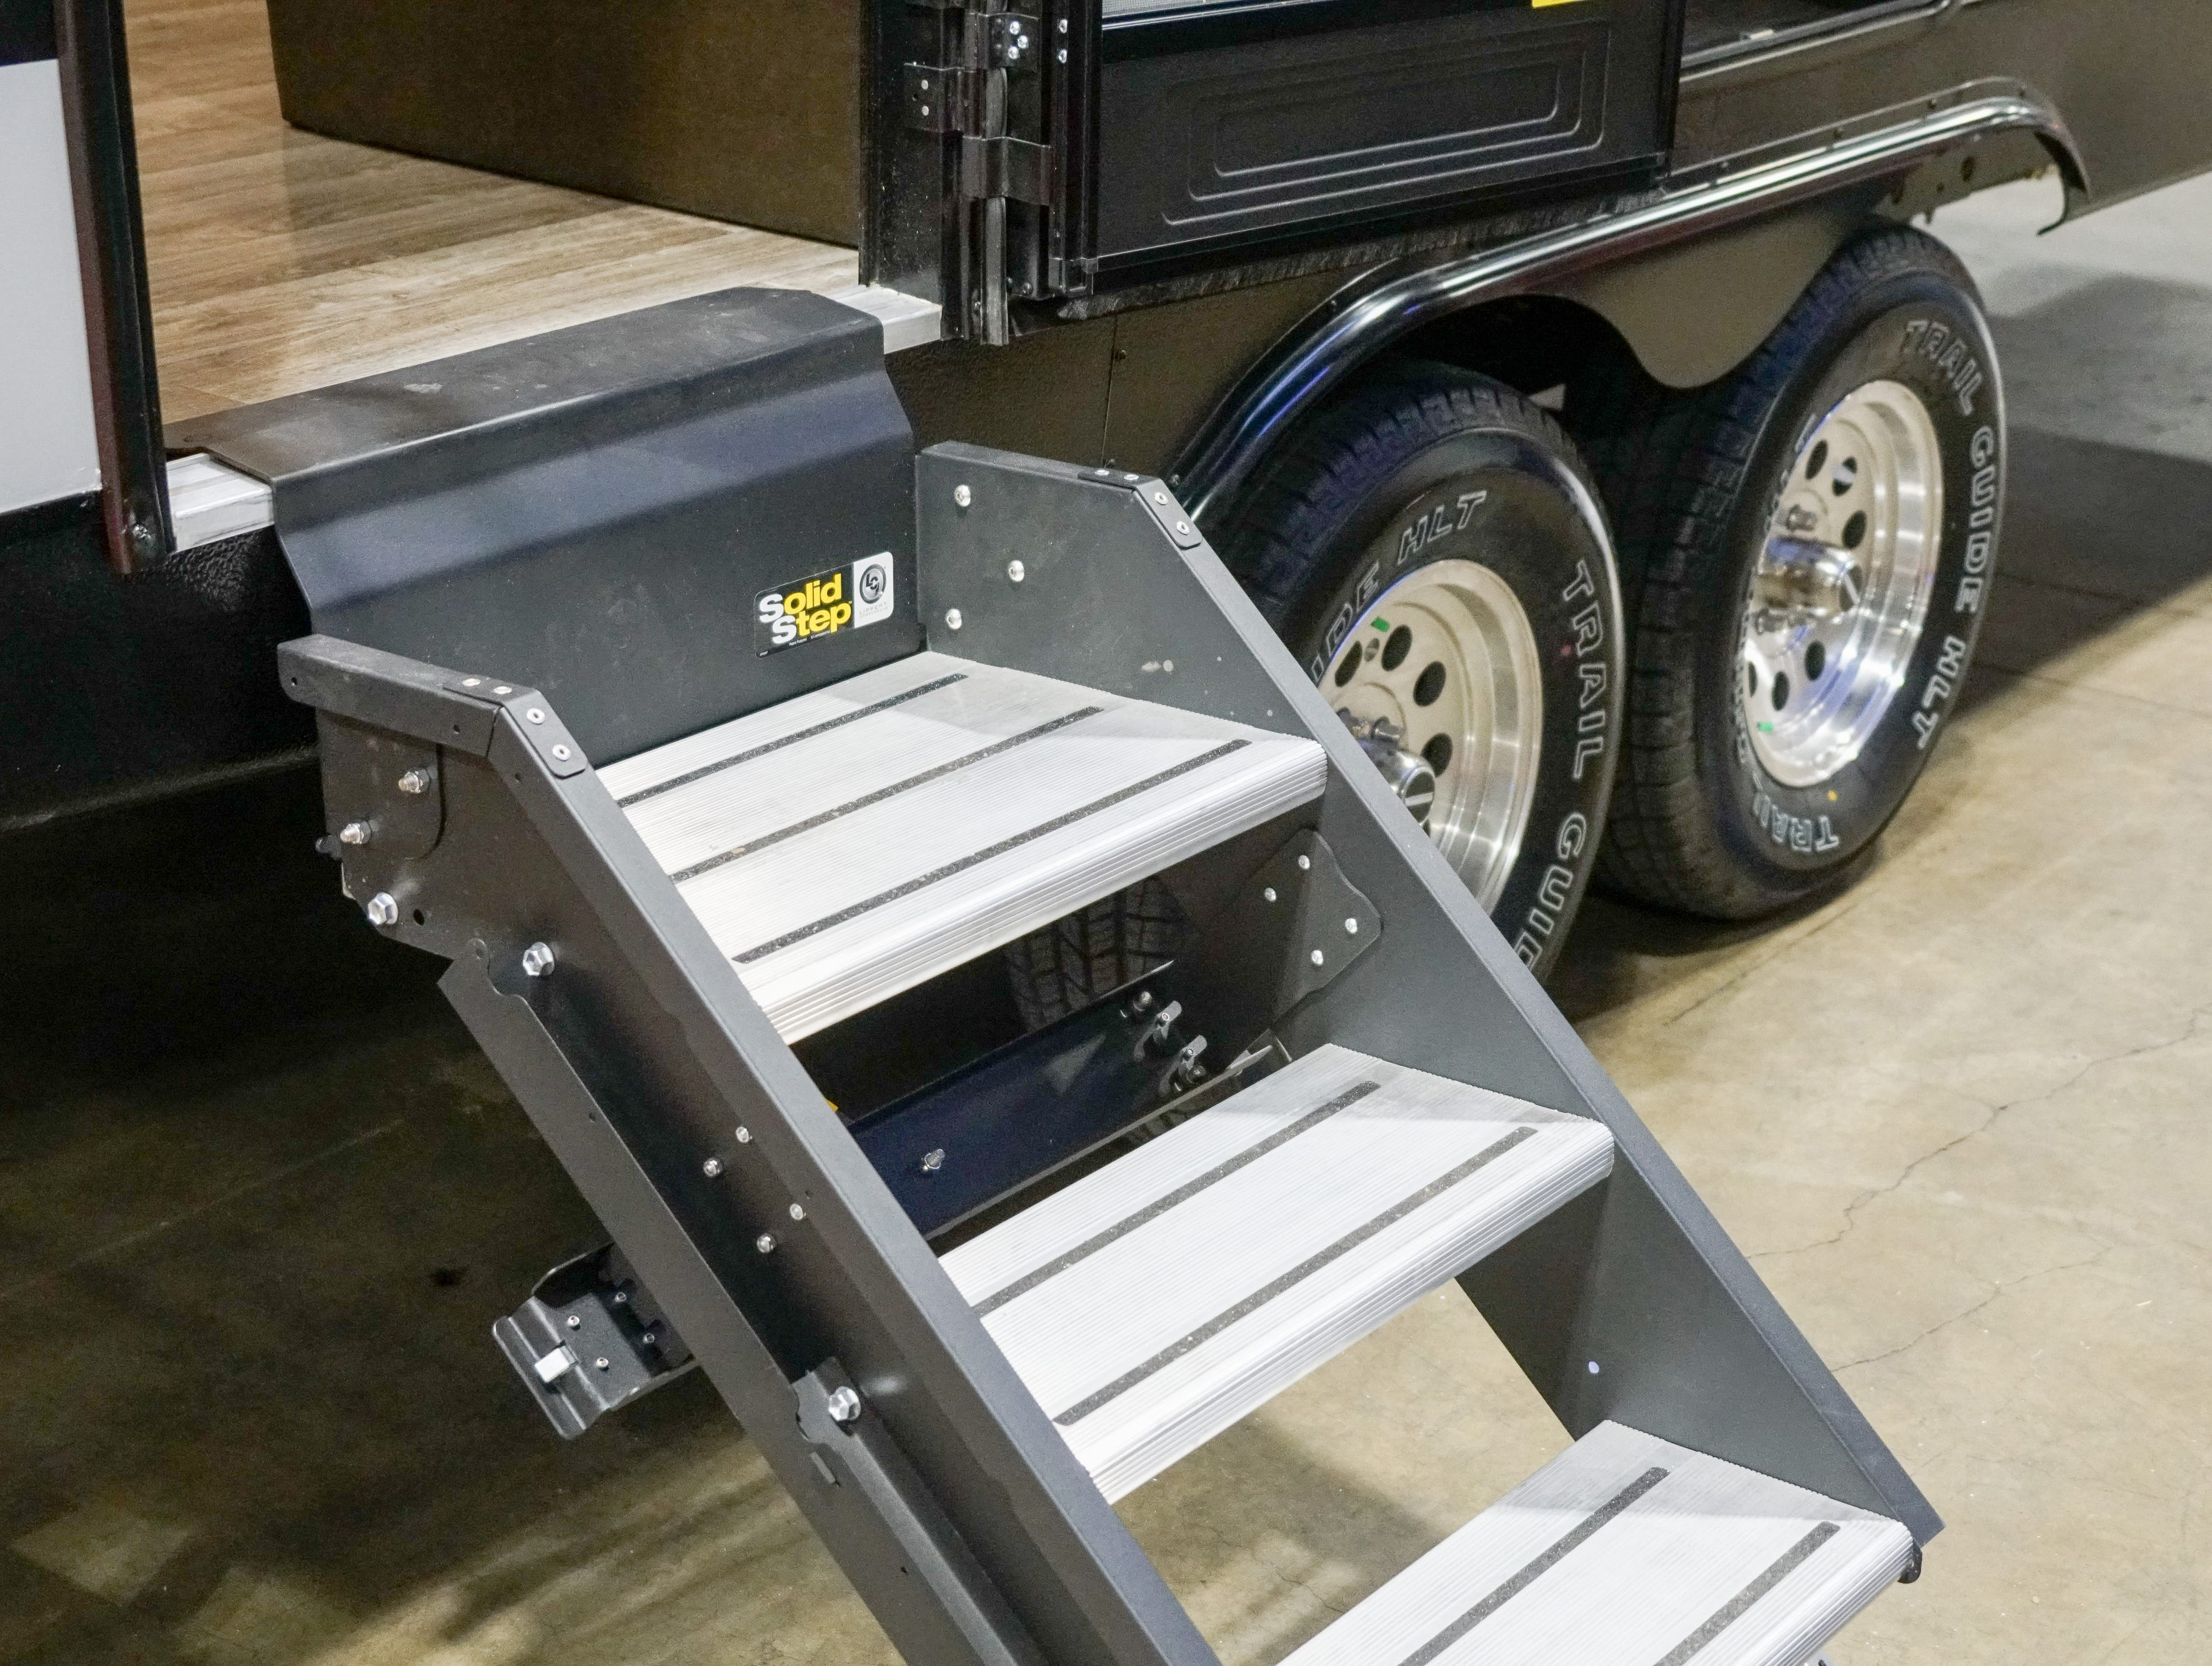 Many RVs now offer more study steps than the older-style folding-ladder ones that some people found precarious.